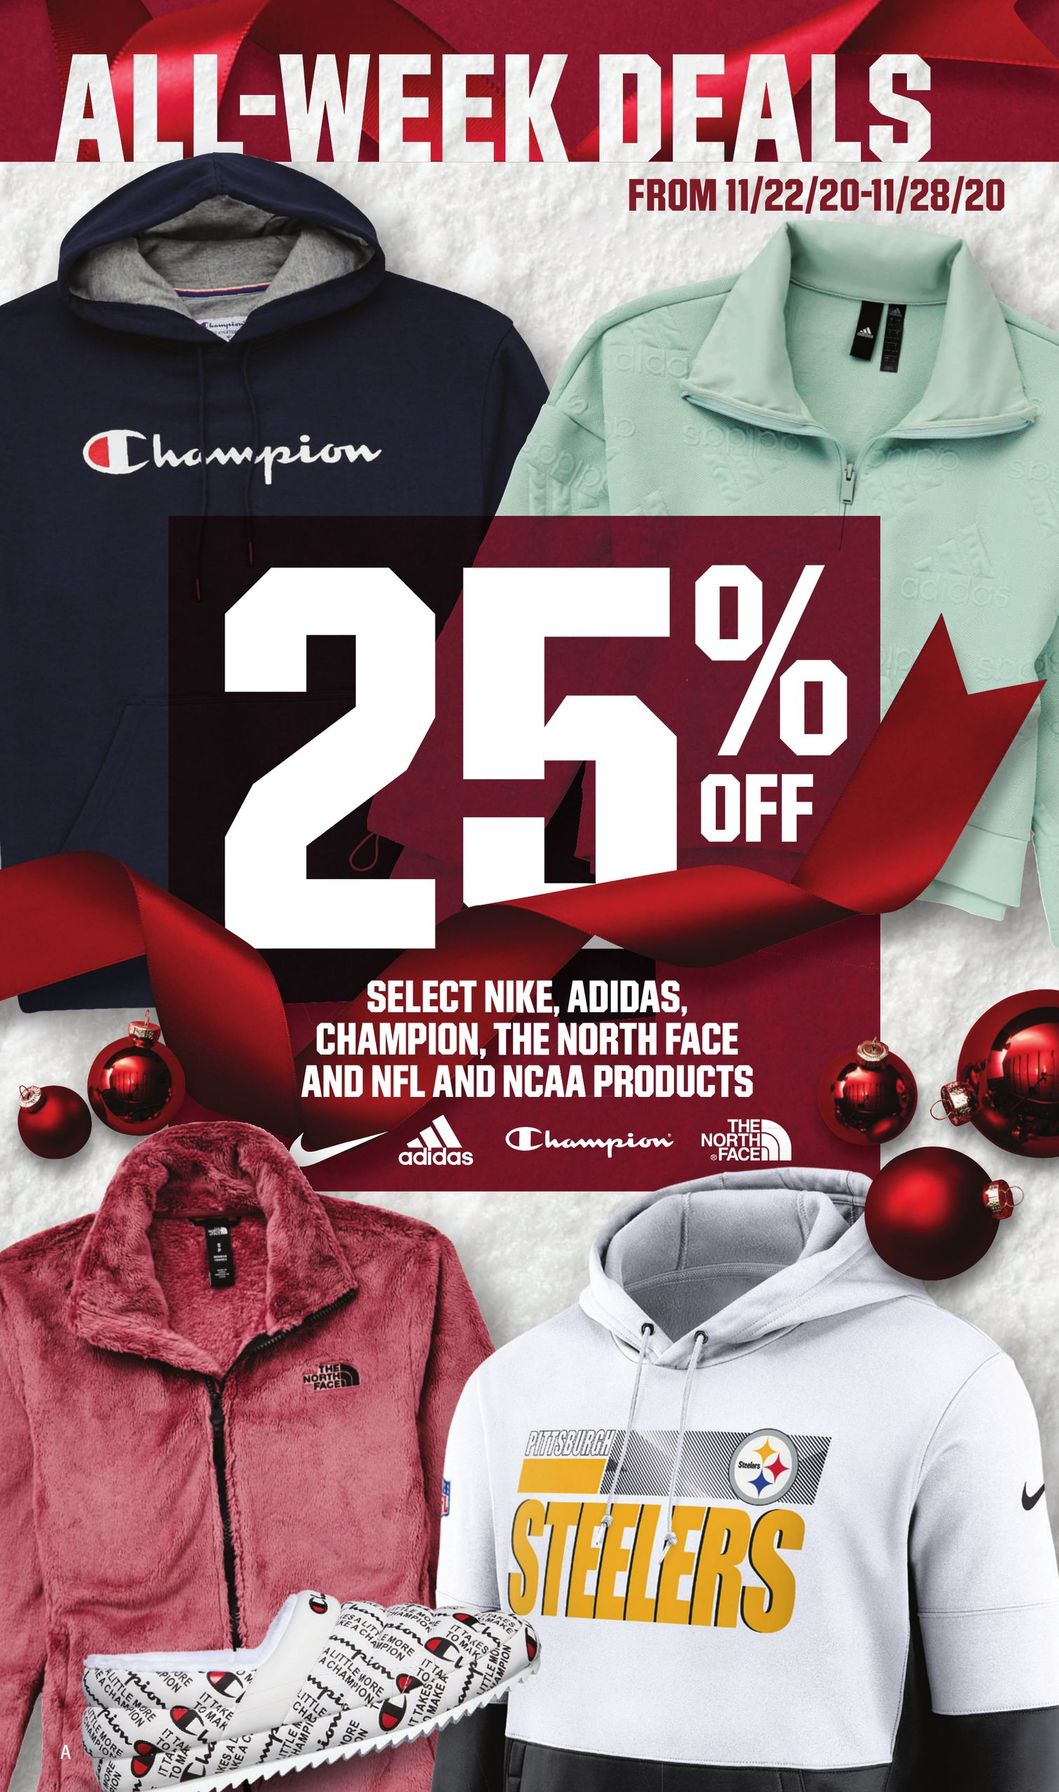 Dick's Sporting Goods Black Friday 2020 Page 4